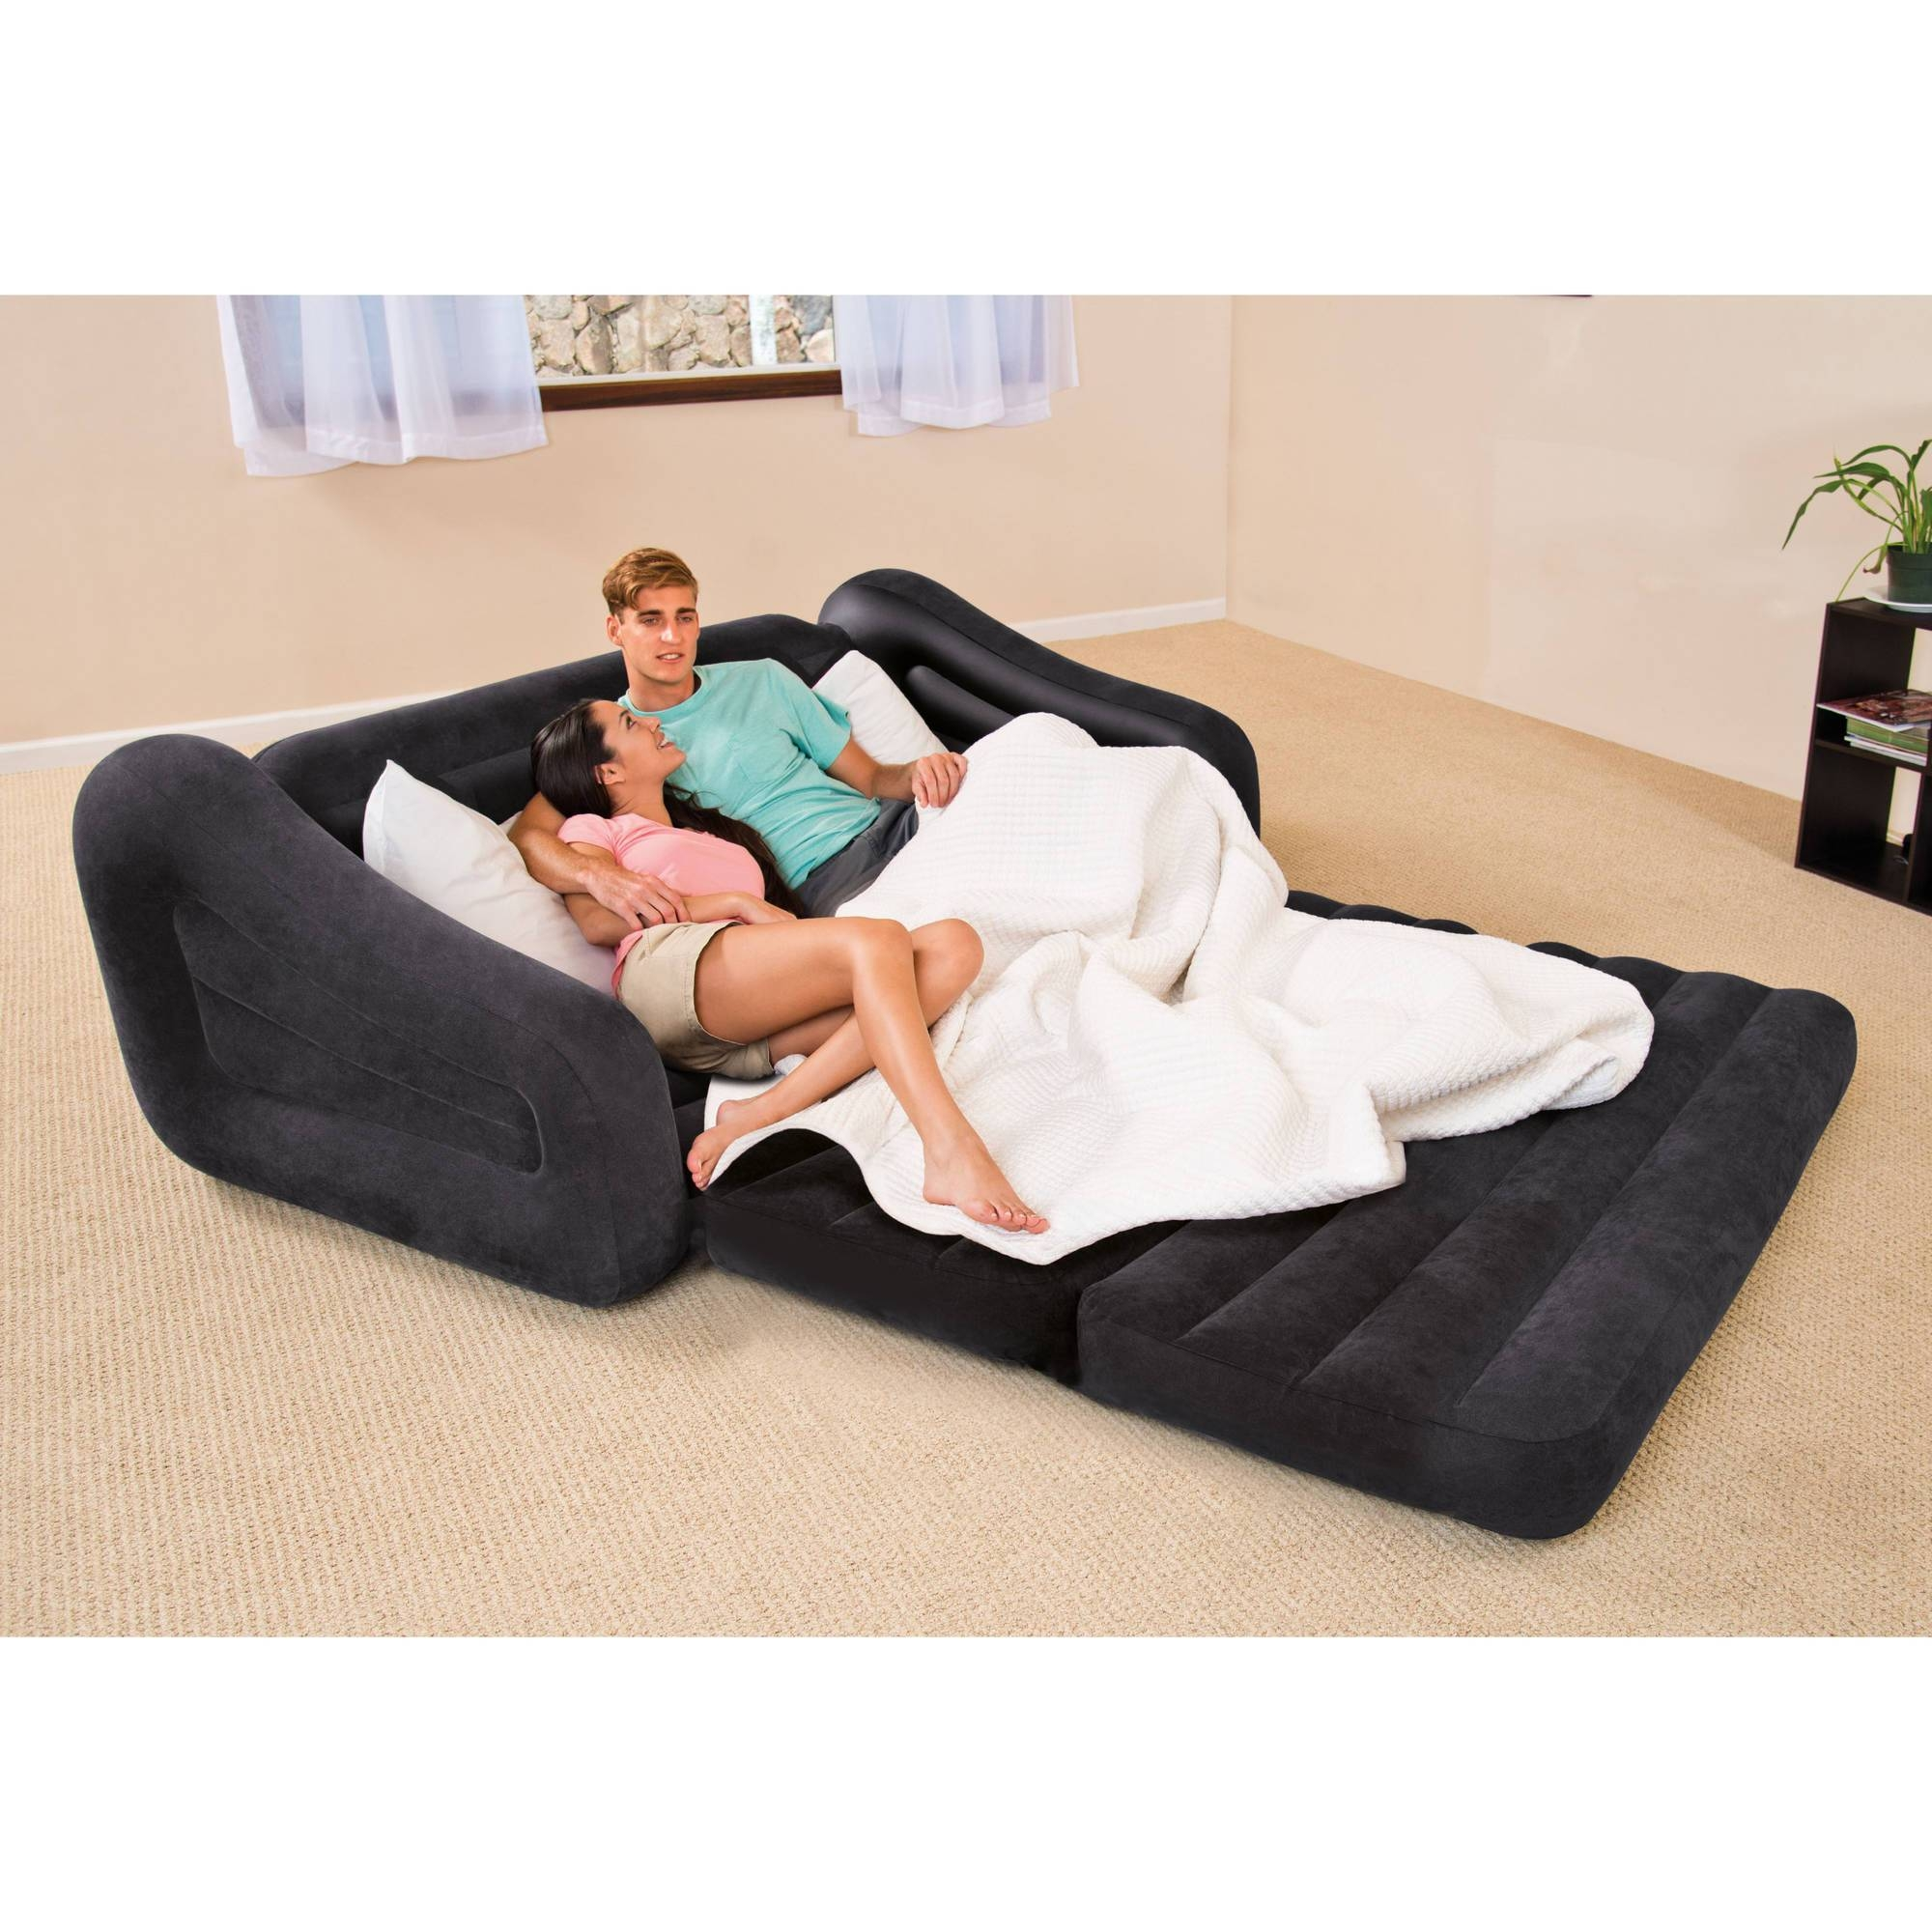 Intex Queen Inflatable Pull Out Sofa Bed – Walmart Intended For Intex Air Sofa Beds (View 13 of 15)